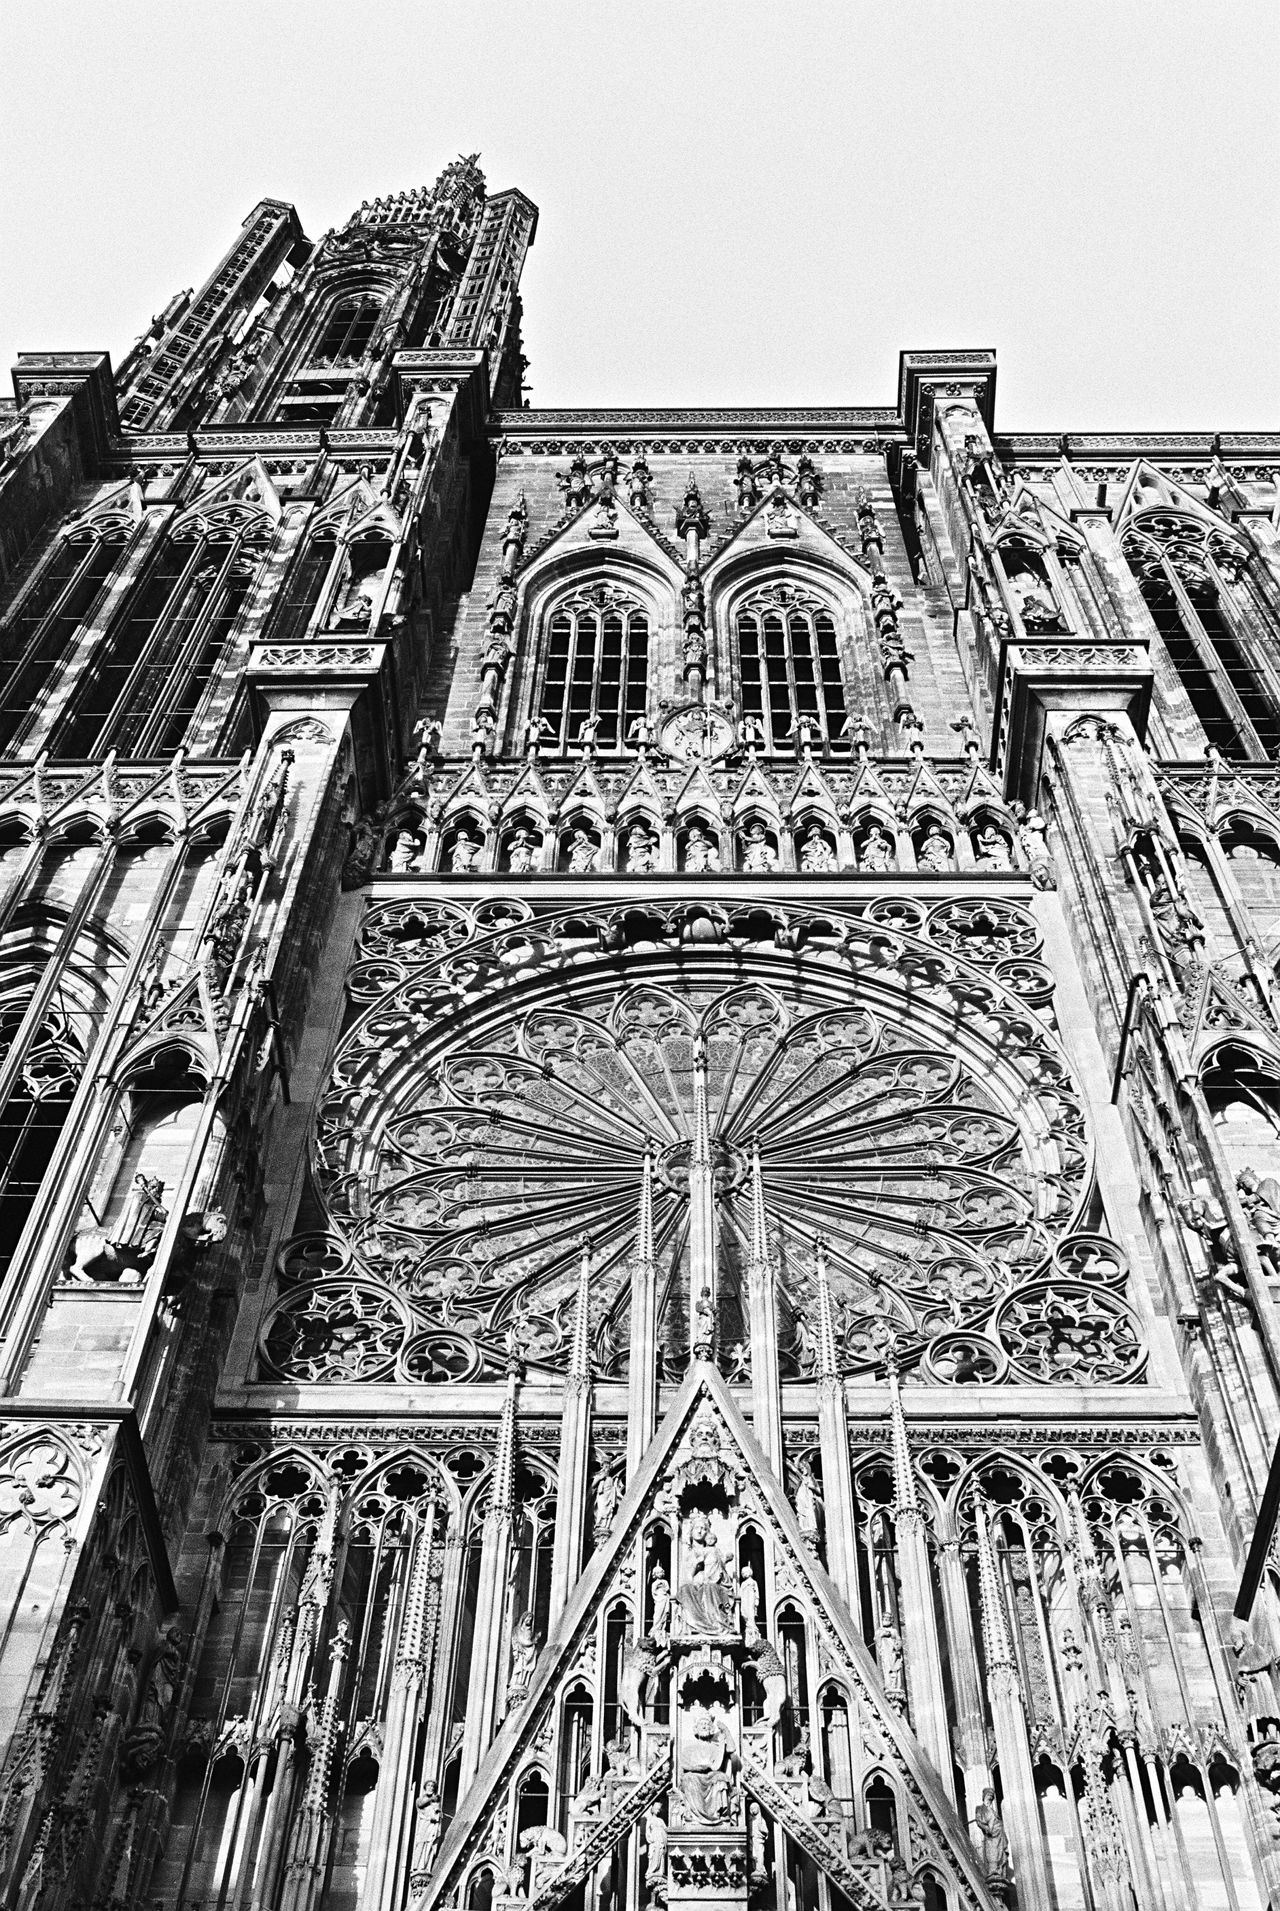 Low Angle View Architecture Built Structure Building Exterior No People Religion Day Place Of Worship Clear Sky Outdoors Spirituality Sky Rose Window Notre-Dame Strasbourg Blackandwhite Analogue Photography Film Photography Filmisnotdead 35mm